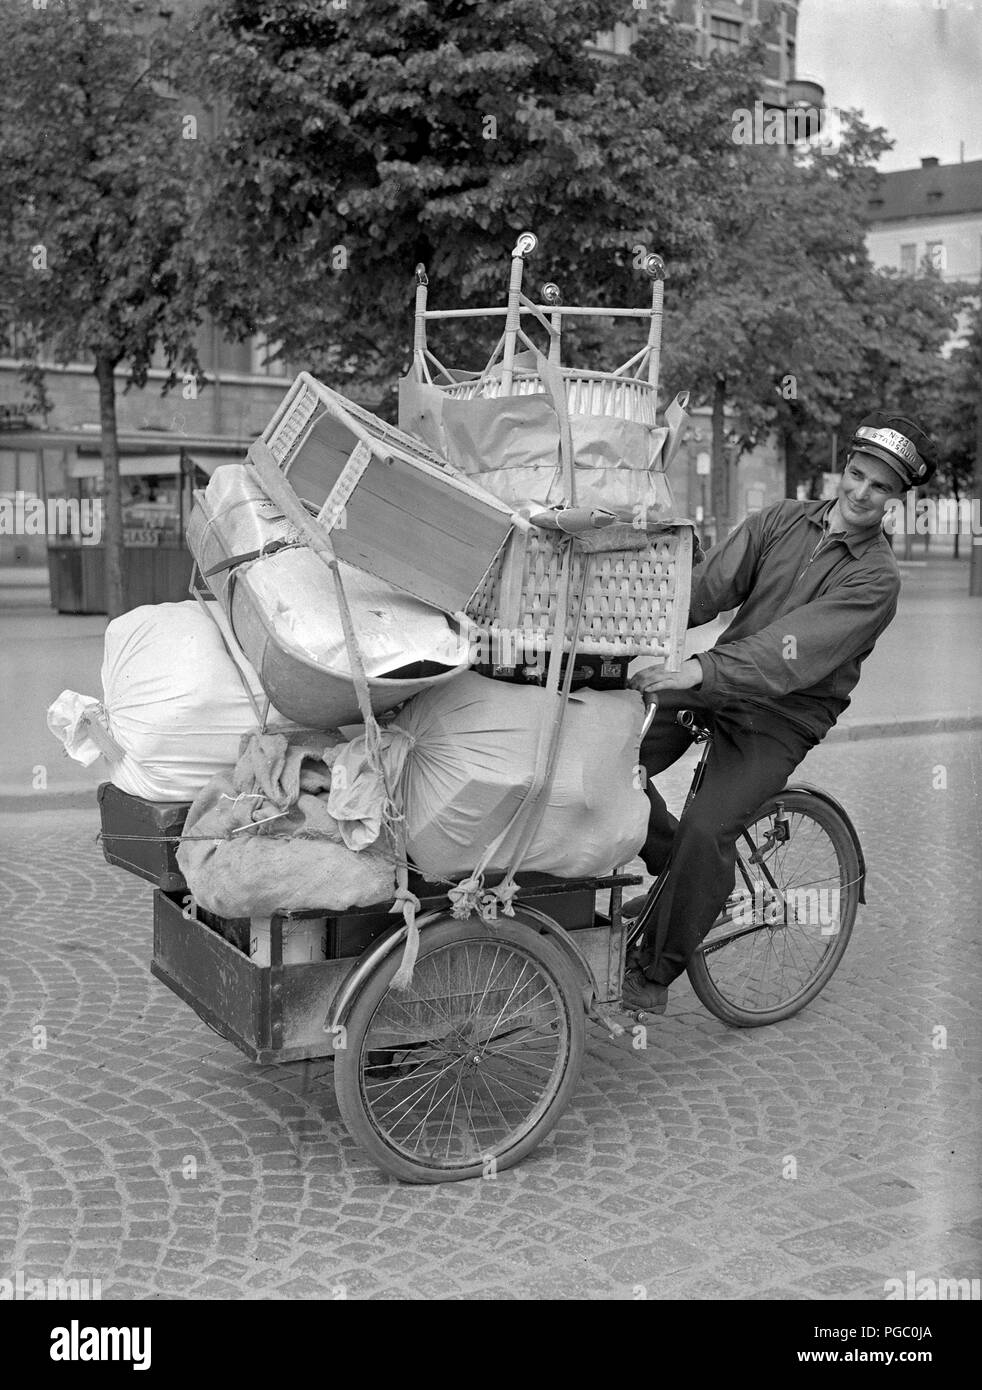 1940s transportation. A young man is working as a bicycle messanger and transporting goods in Stockholm city with his transport bicycle. June 1940.  Photo Kristoffersson 146-7 - Stock Image